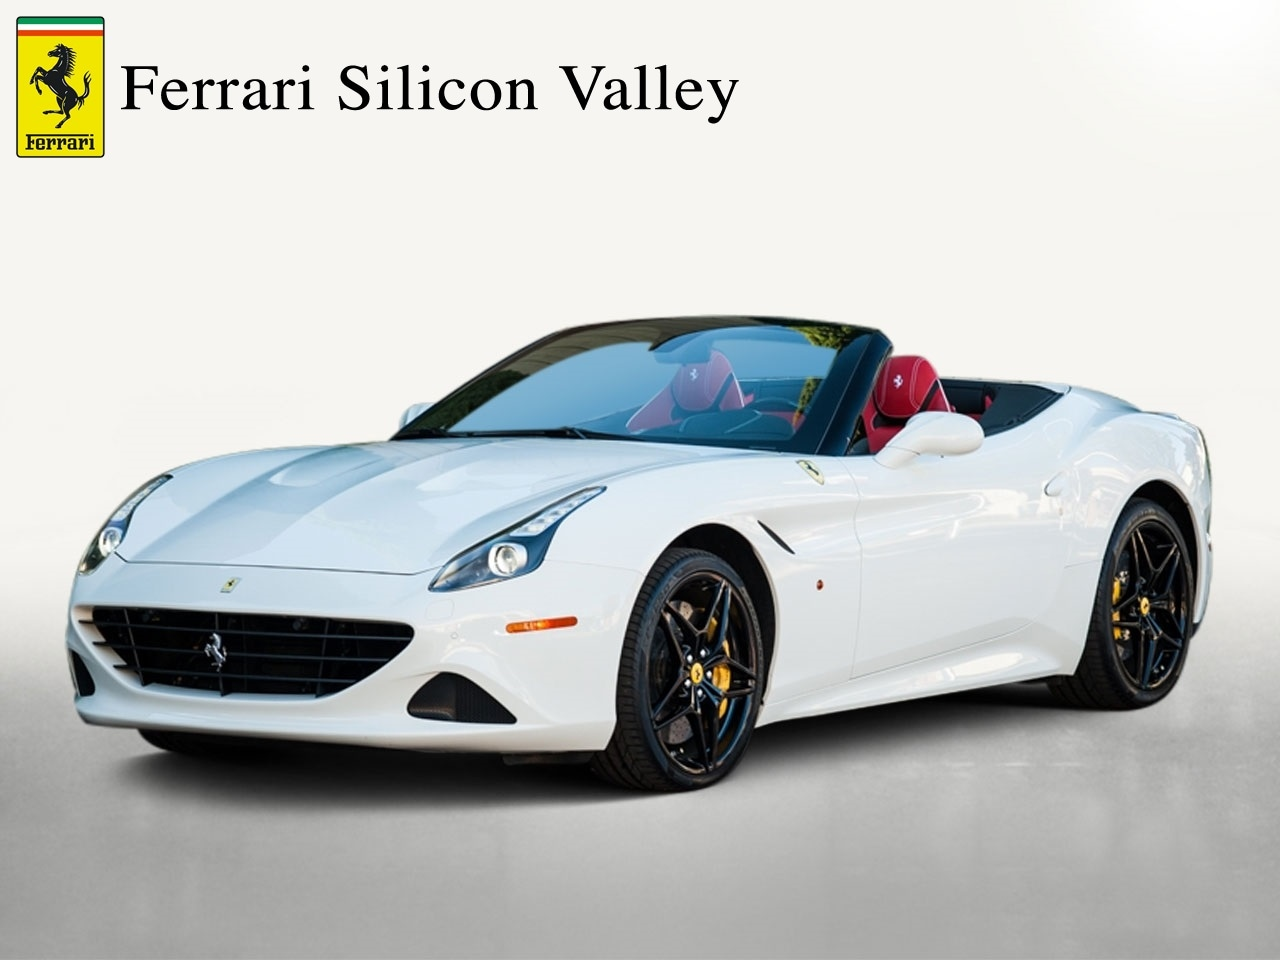 Certified Pre-Owned 2016 Ferrari California T Convertible For Sale Beverly Hills, CA